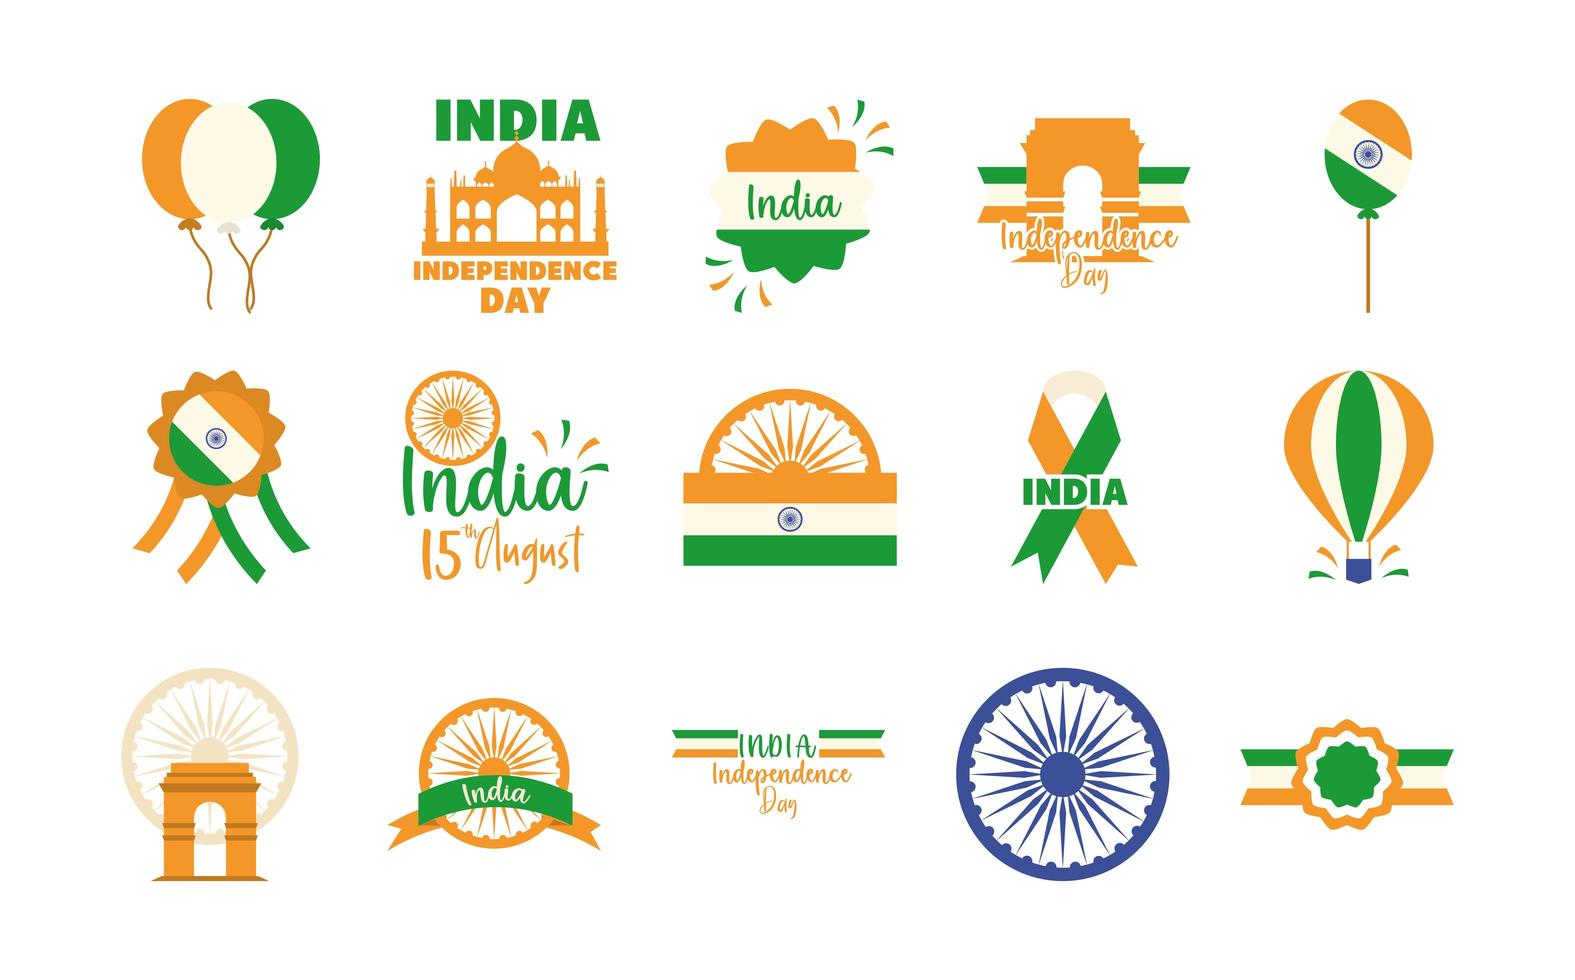 India Independence Day icon set vector